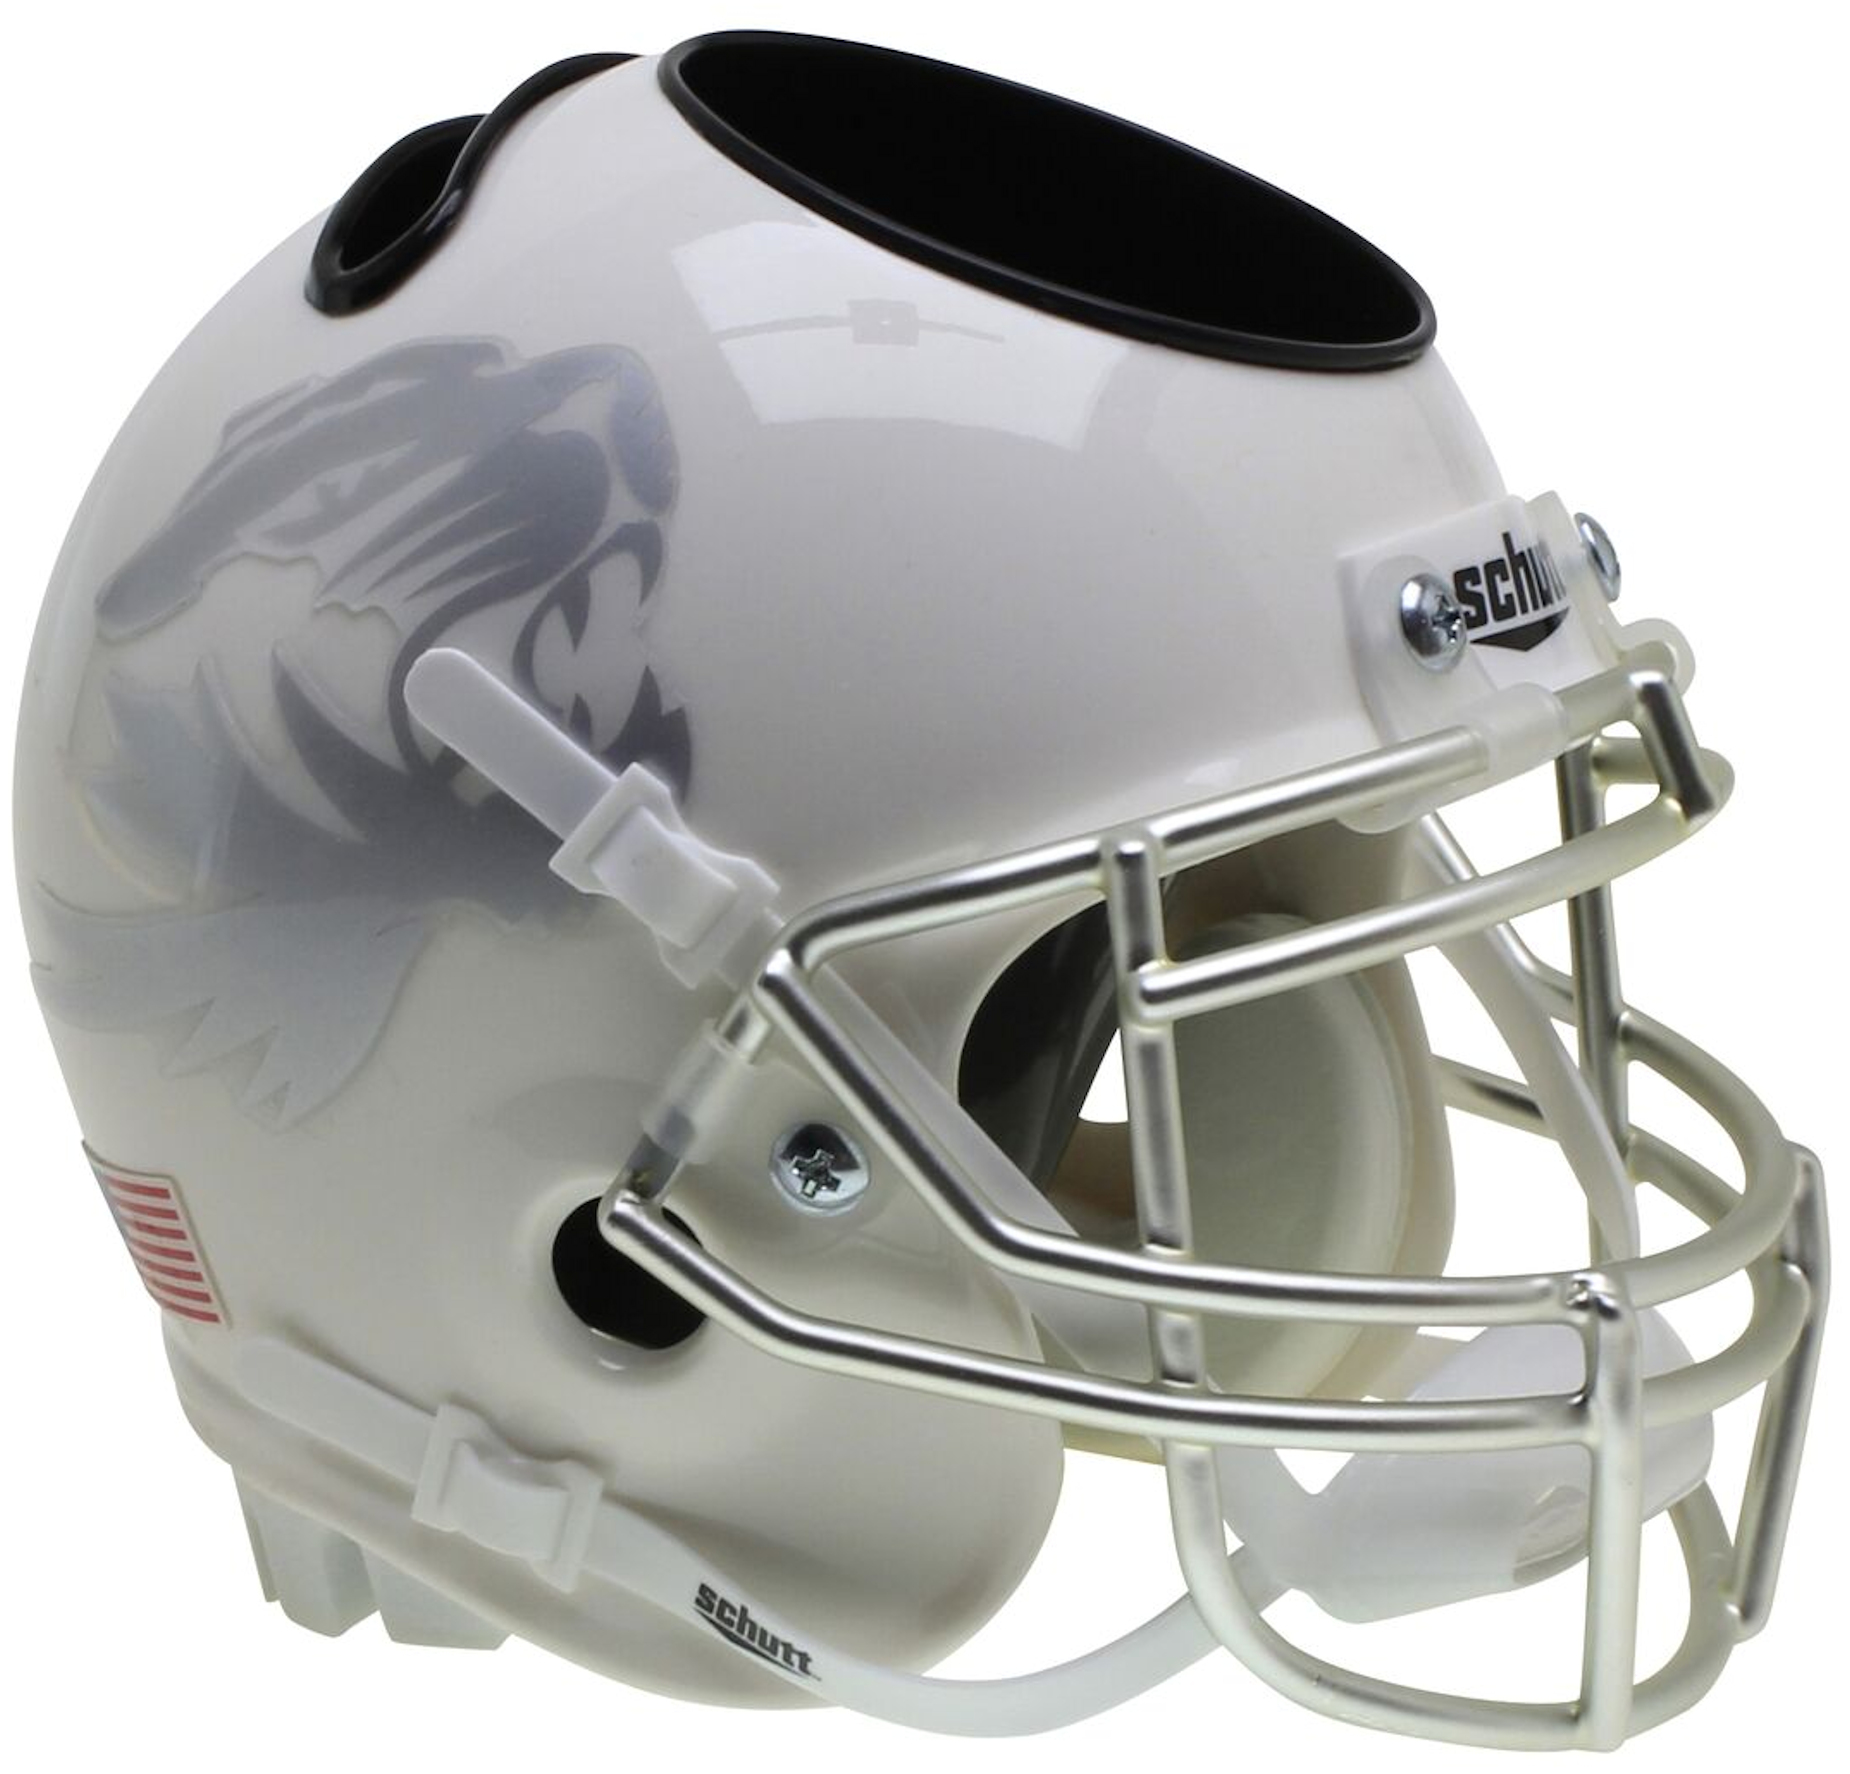 Missouri Tigers Miniature Football Helmet Desk Caddy <B>White with Metallic Silver Mask</B>